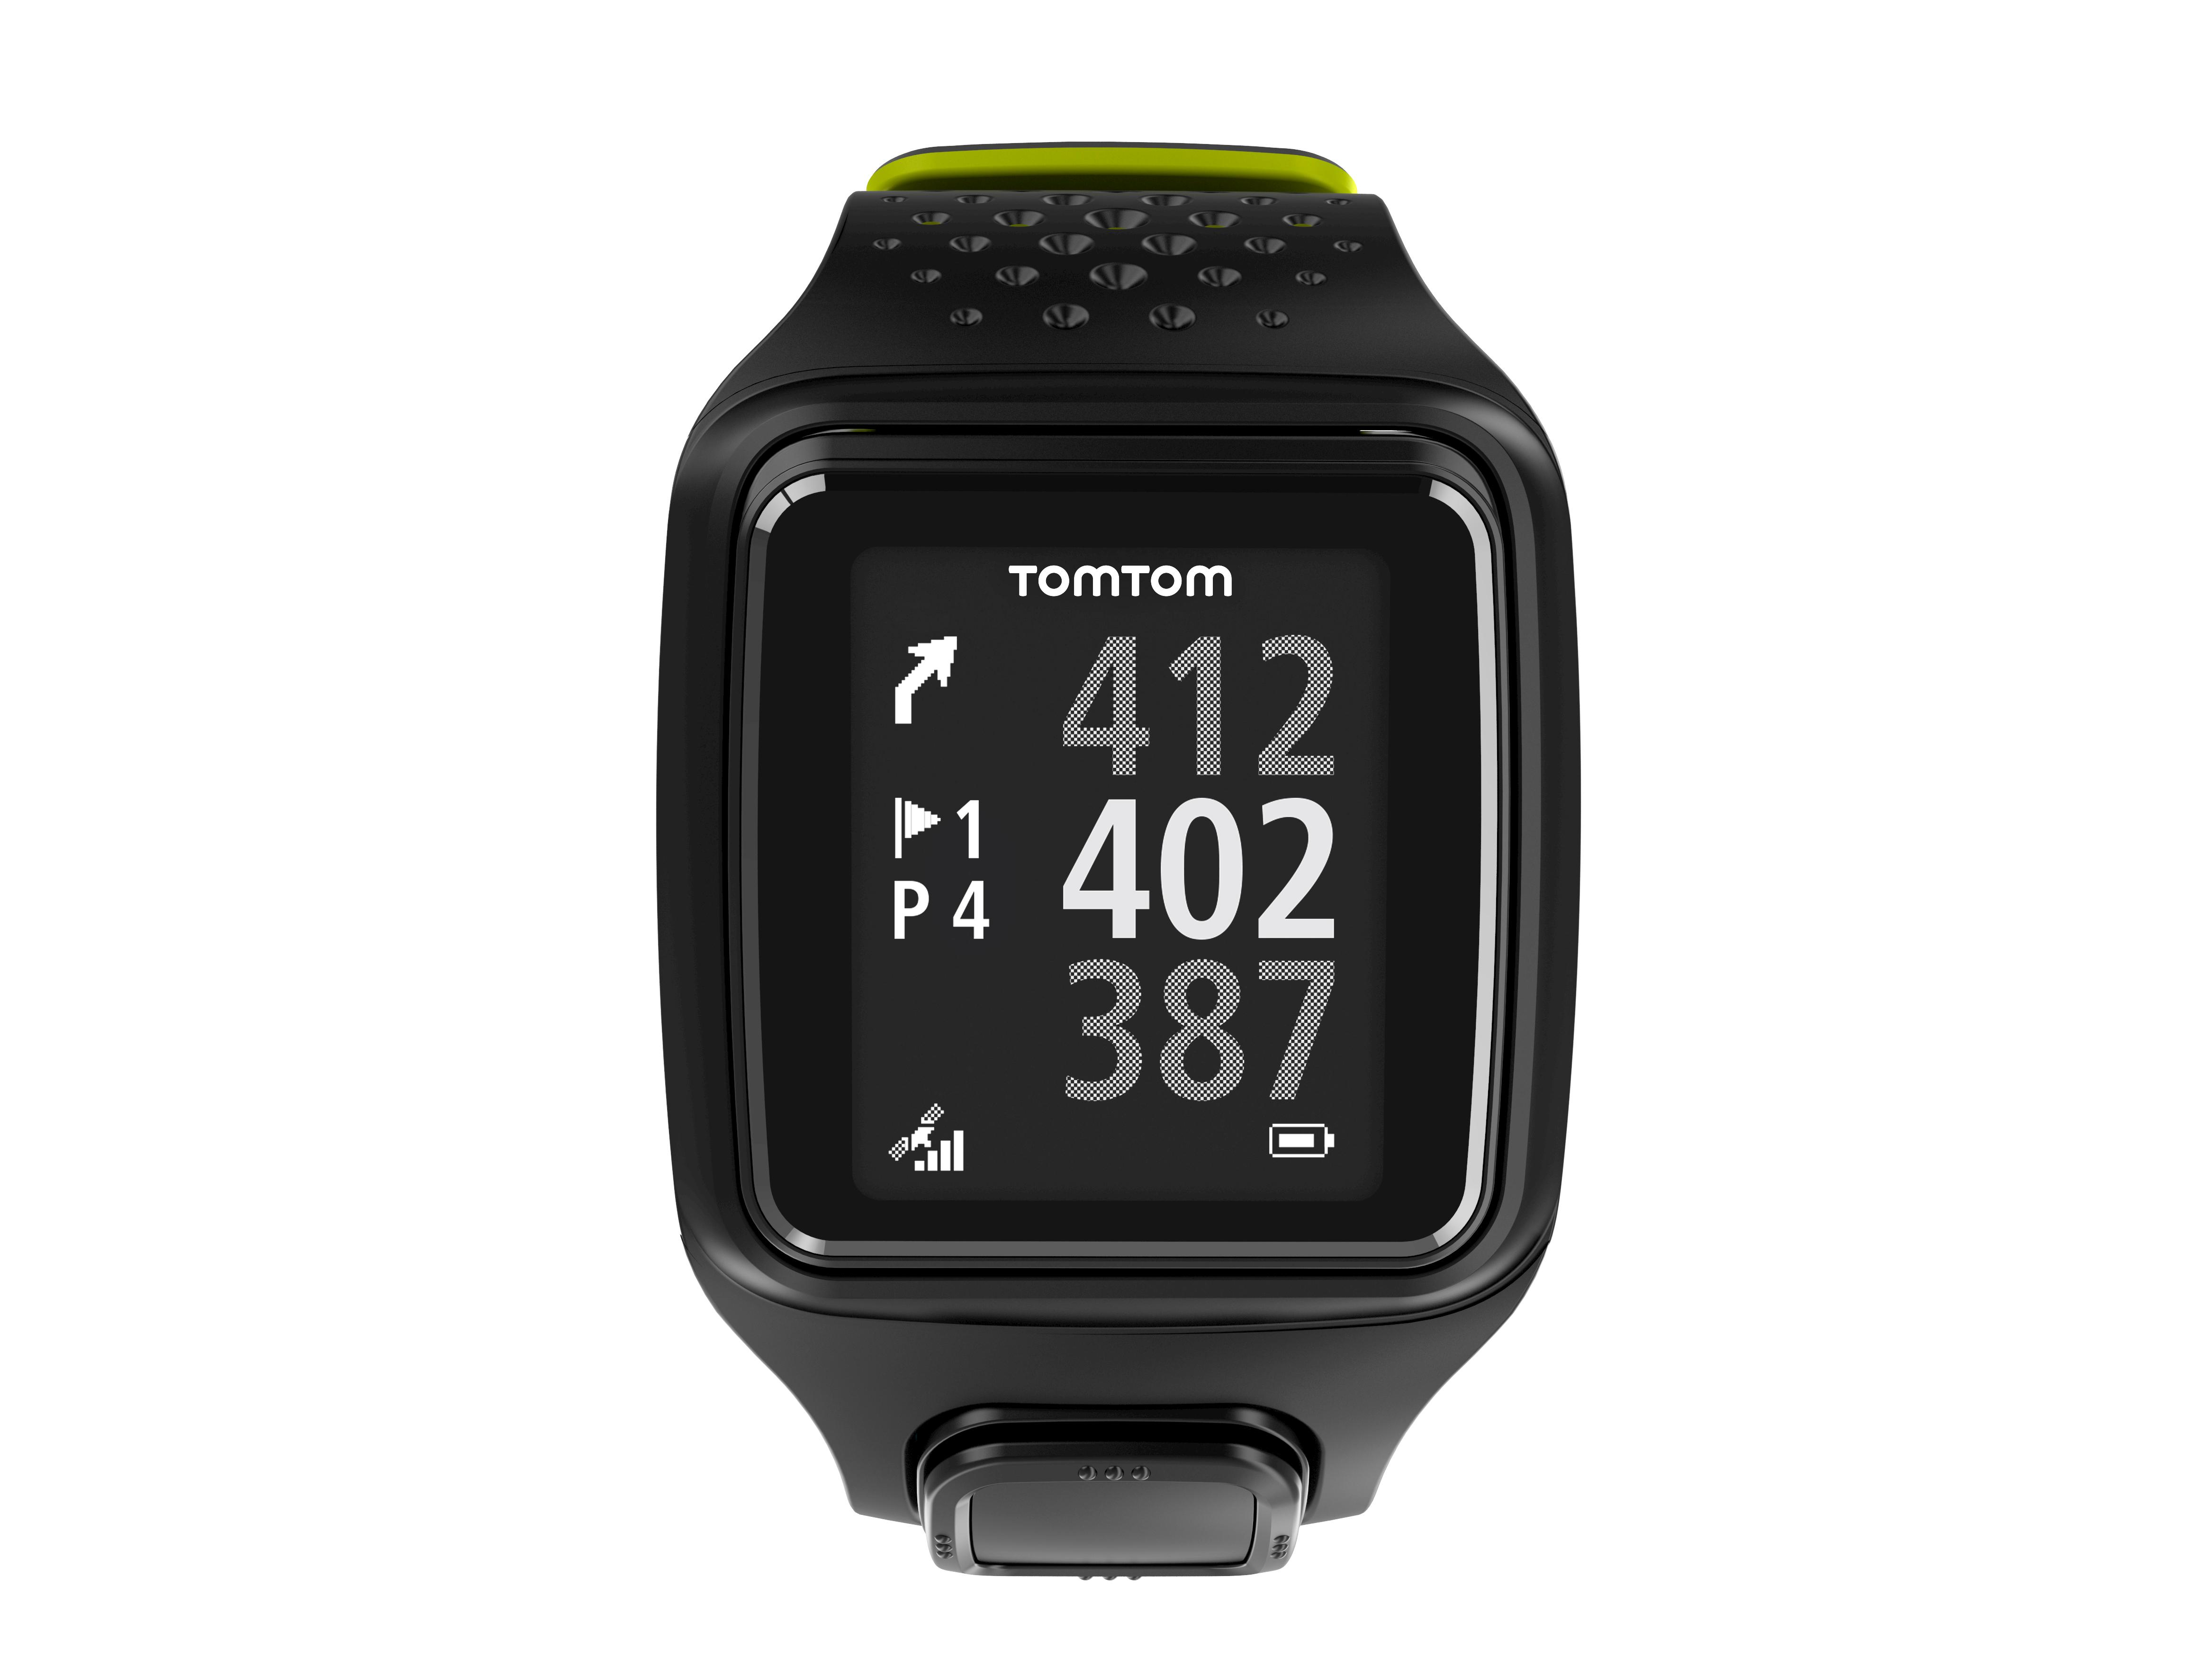 tomtom golfer gps special edition watch black green electronics. Black Bedroom Furniture Sets. Home Design Ideas